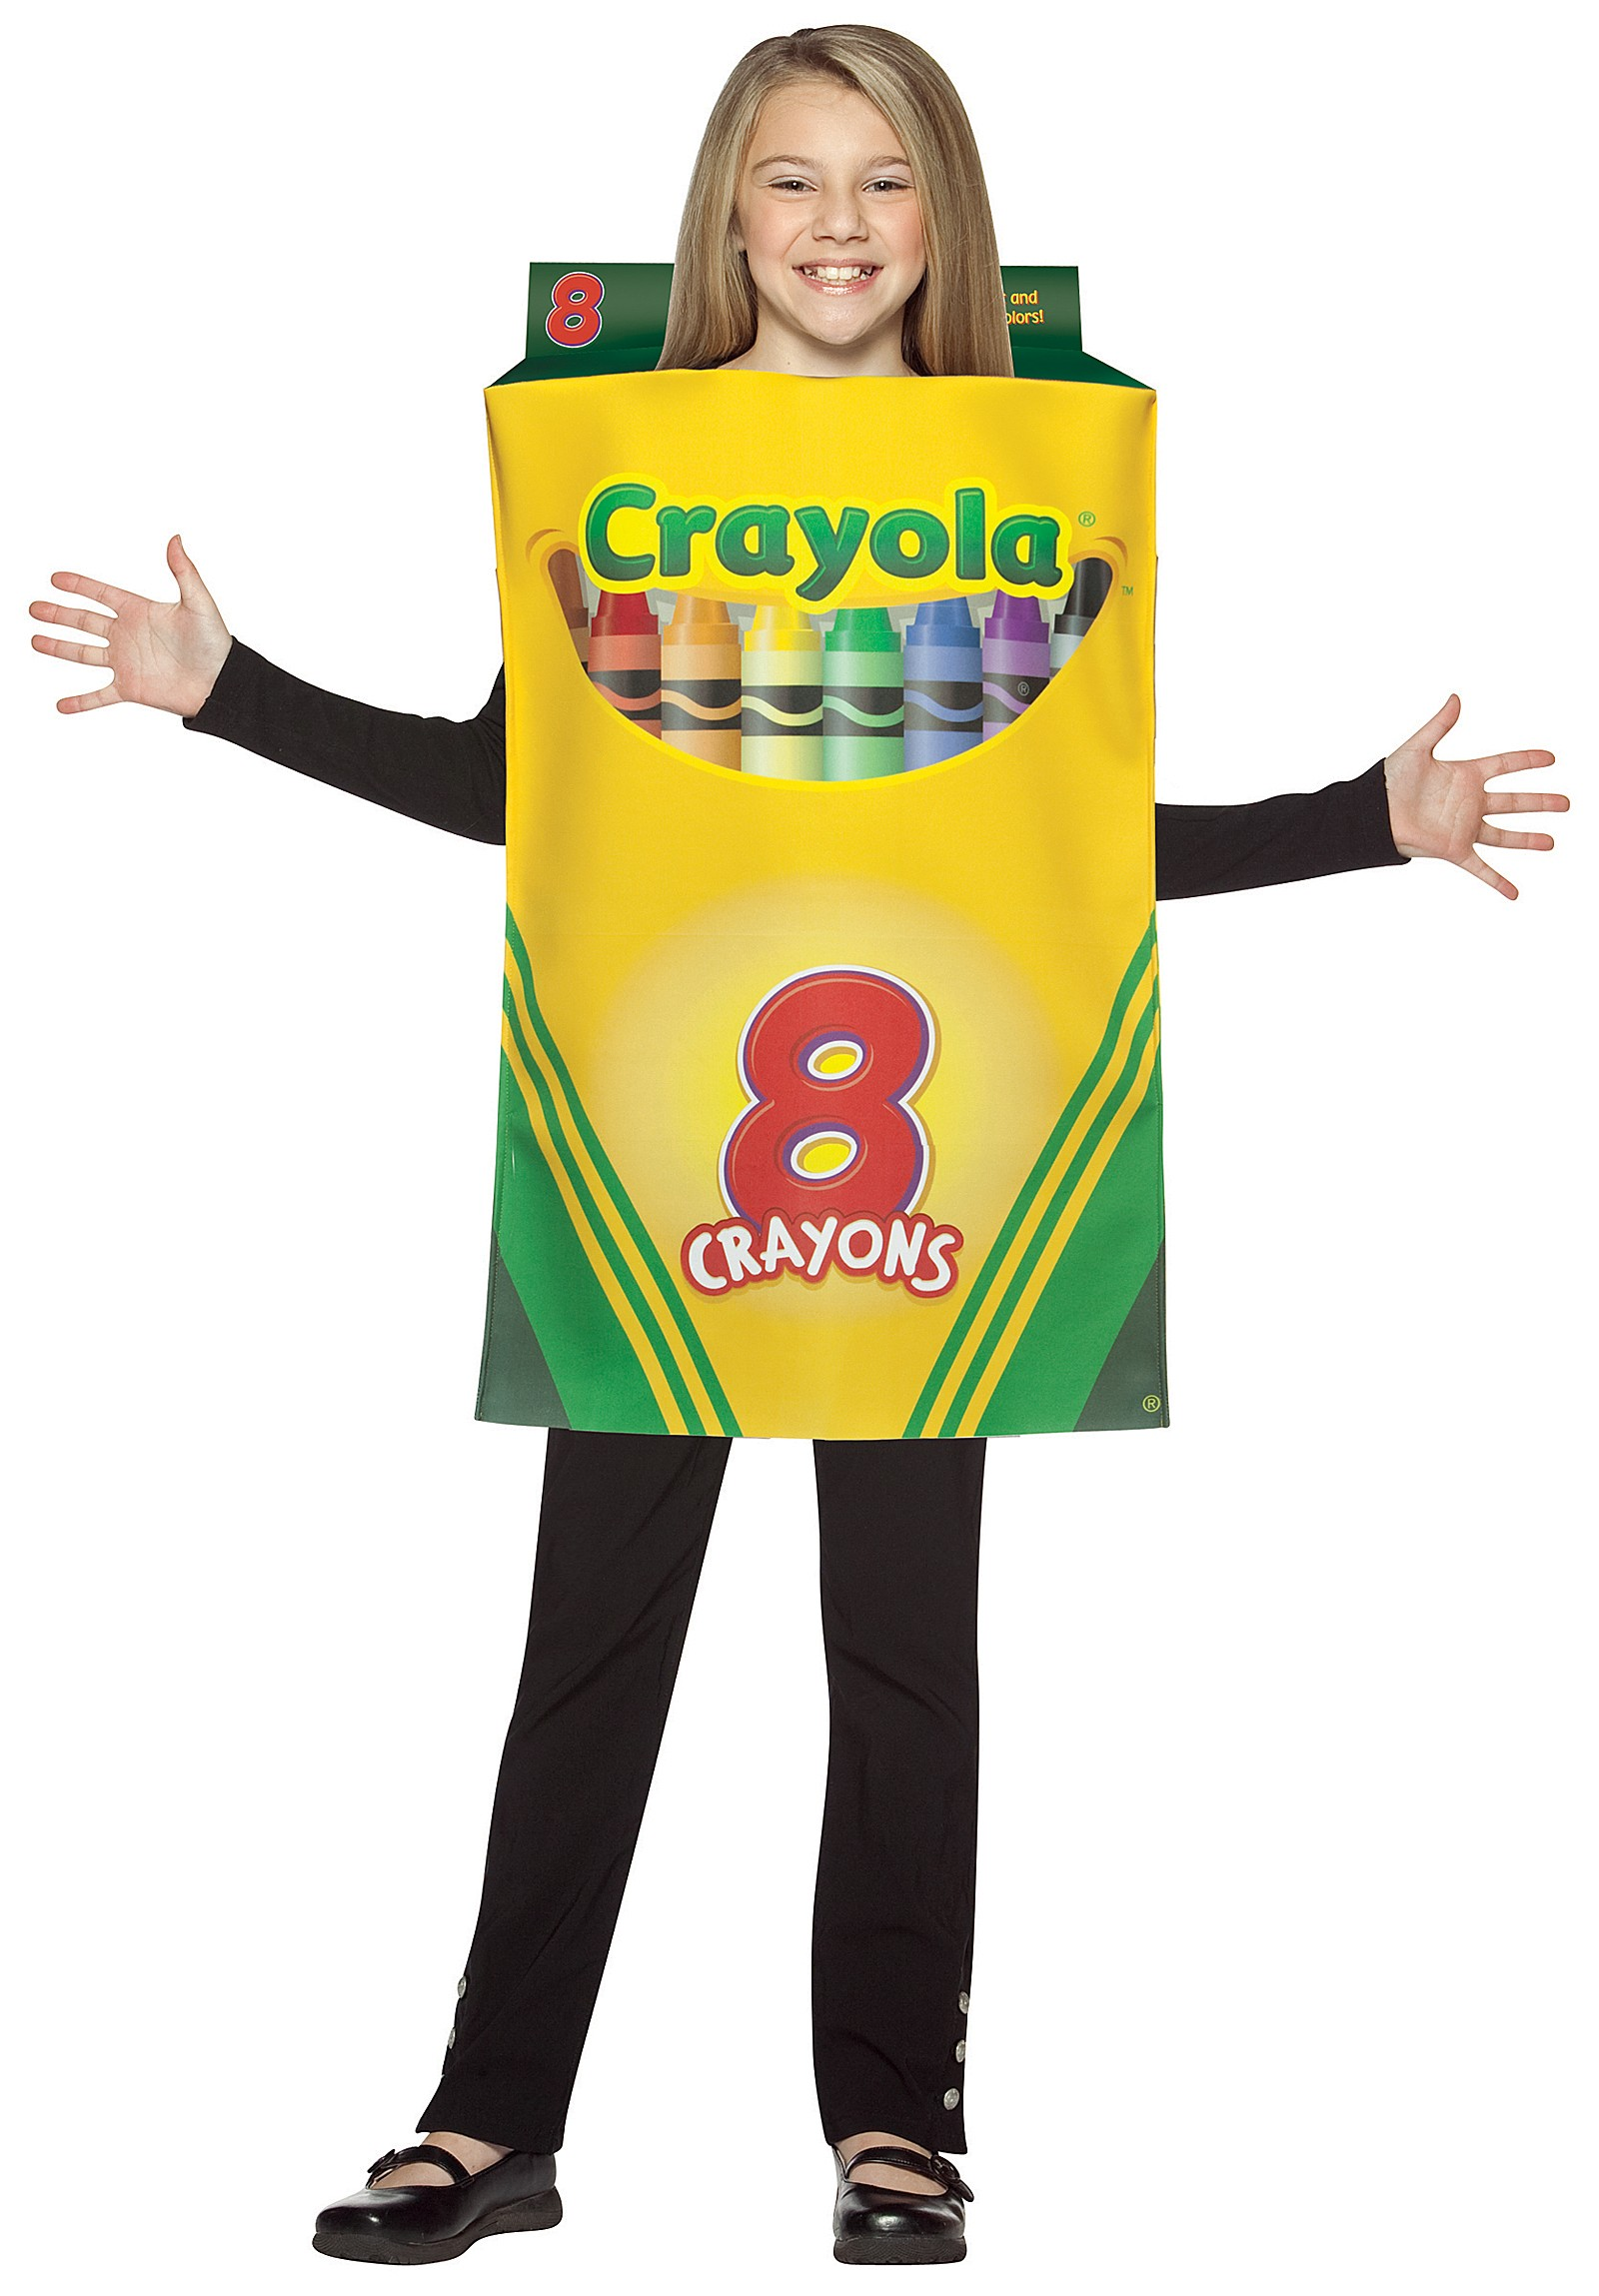 Crayola Crayon Box Child Costume.jpg  sc 1 st  Costumes.com.au : girl crayon costume  - Germanpascual.Com